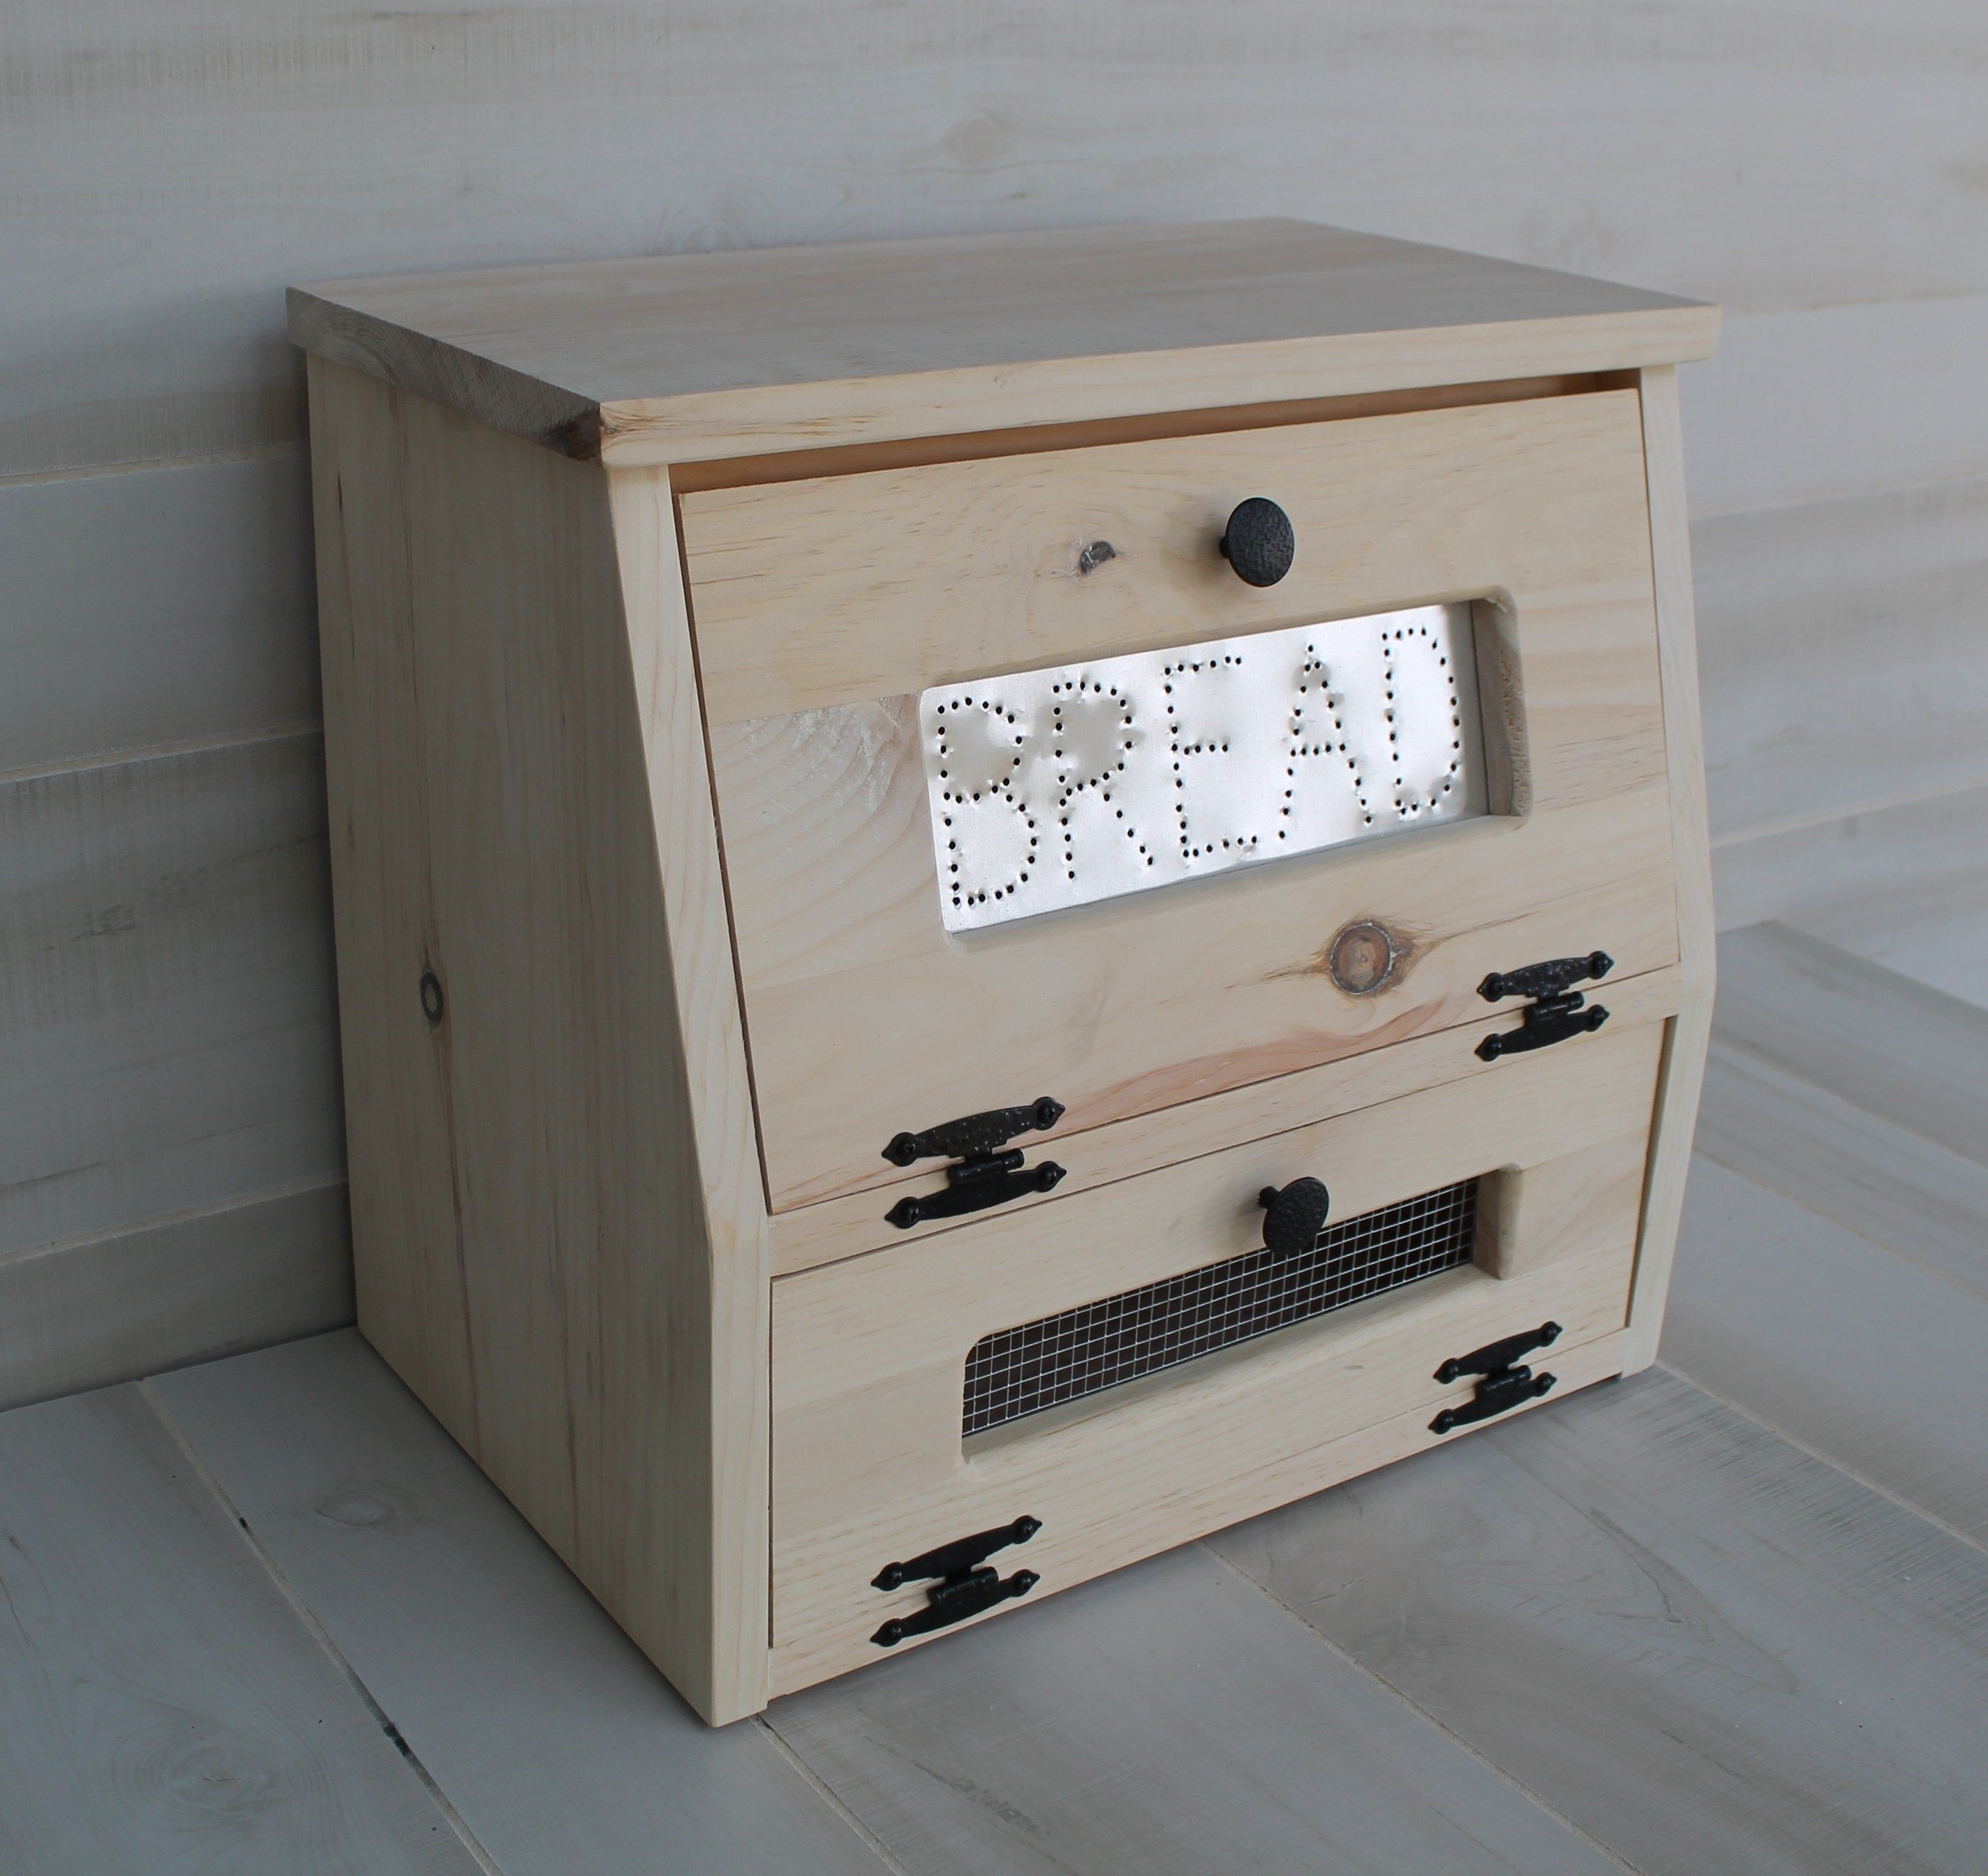 Rustic Bread Box Vegetable Bin UNFINISHED wooden Punched